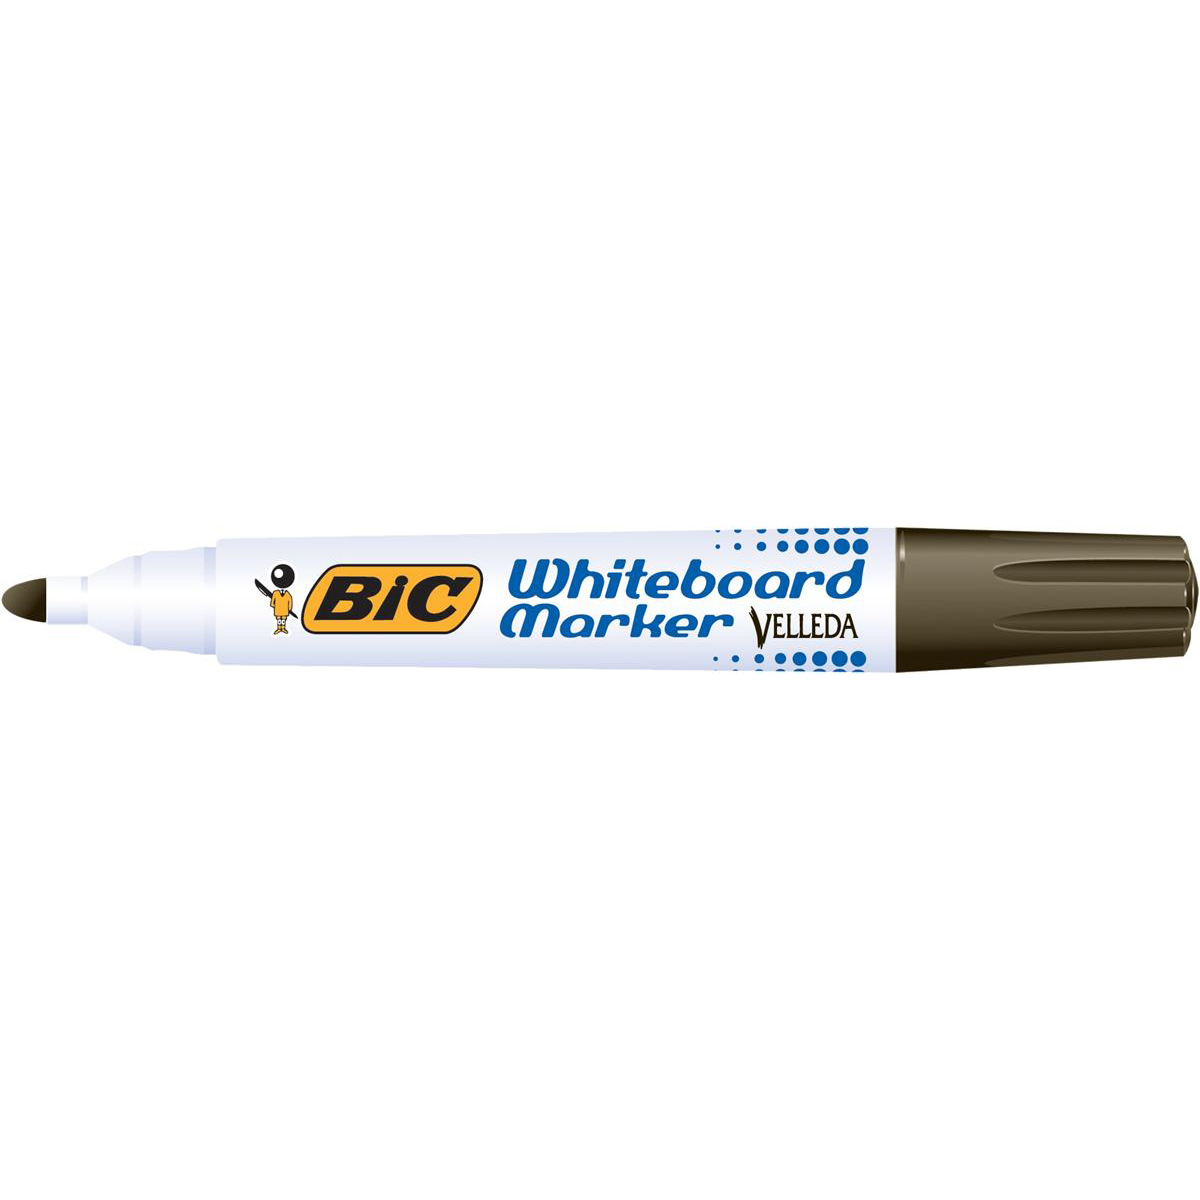 Bic Velleda Marker Whiteboard Dry-wipe 1701 Large Bullet Tip 1.5mm Line Black Ref 942234 Pack 12